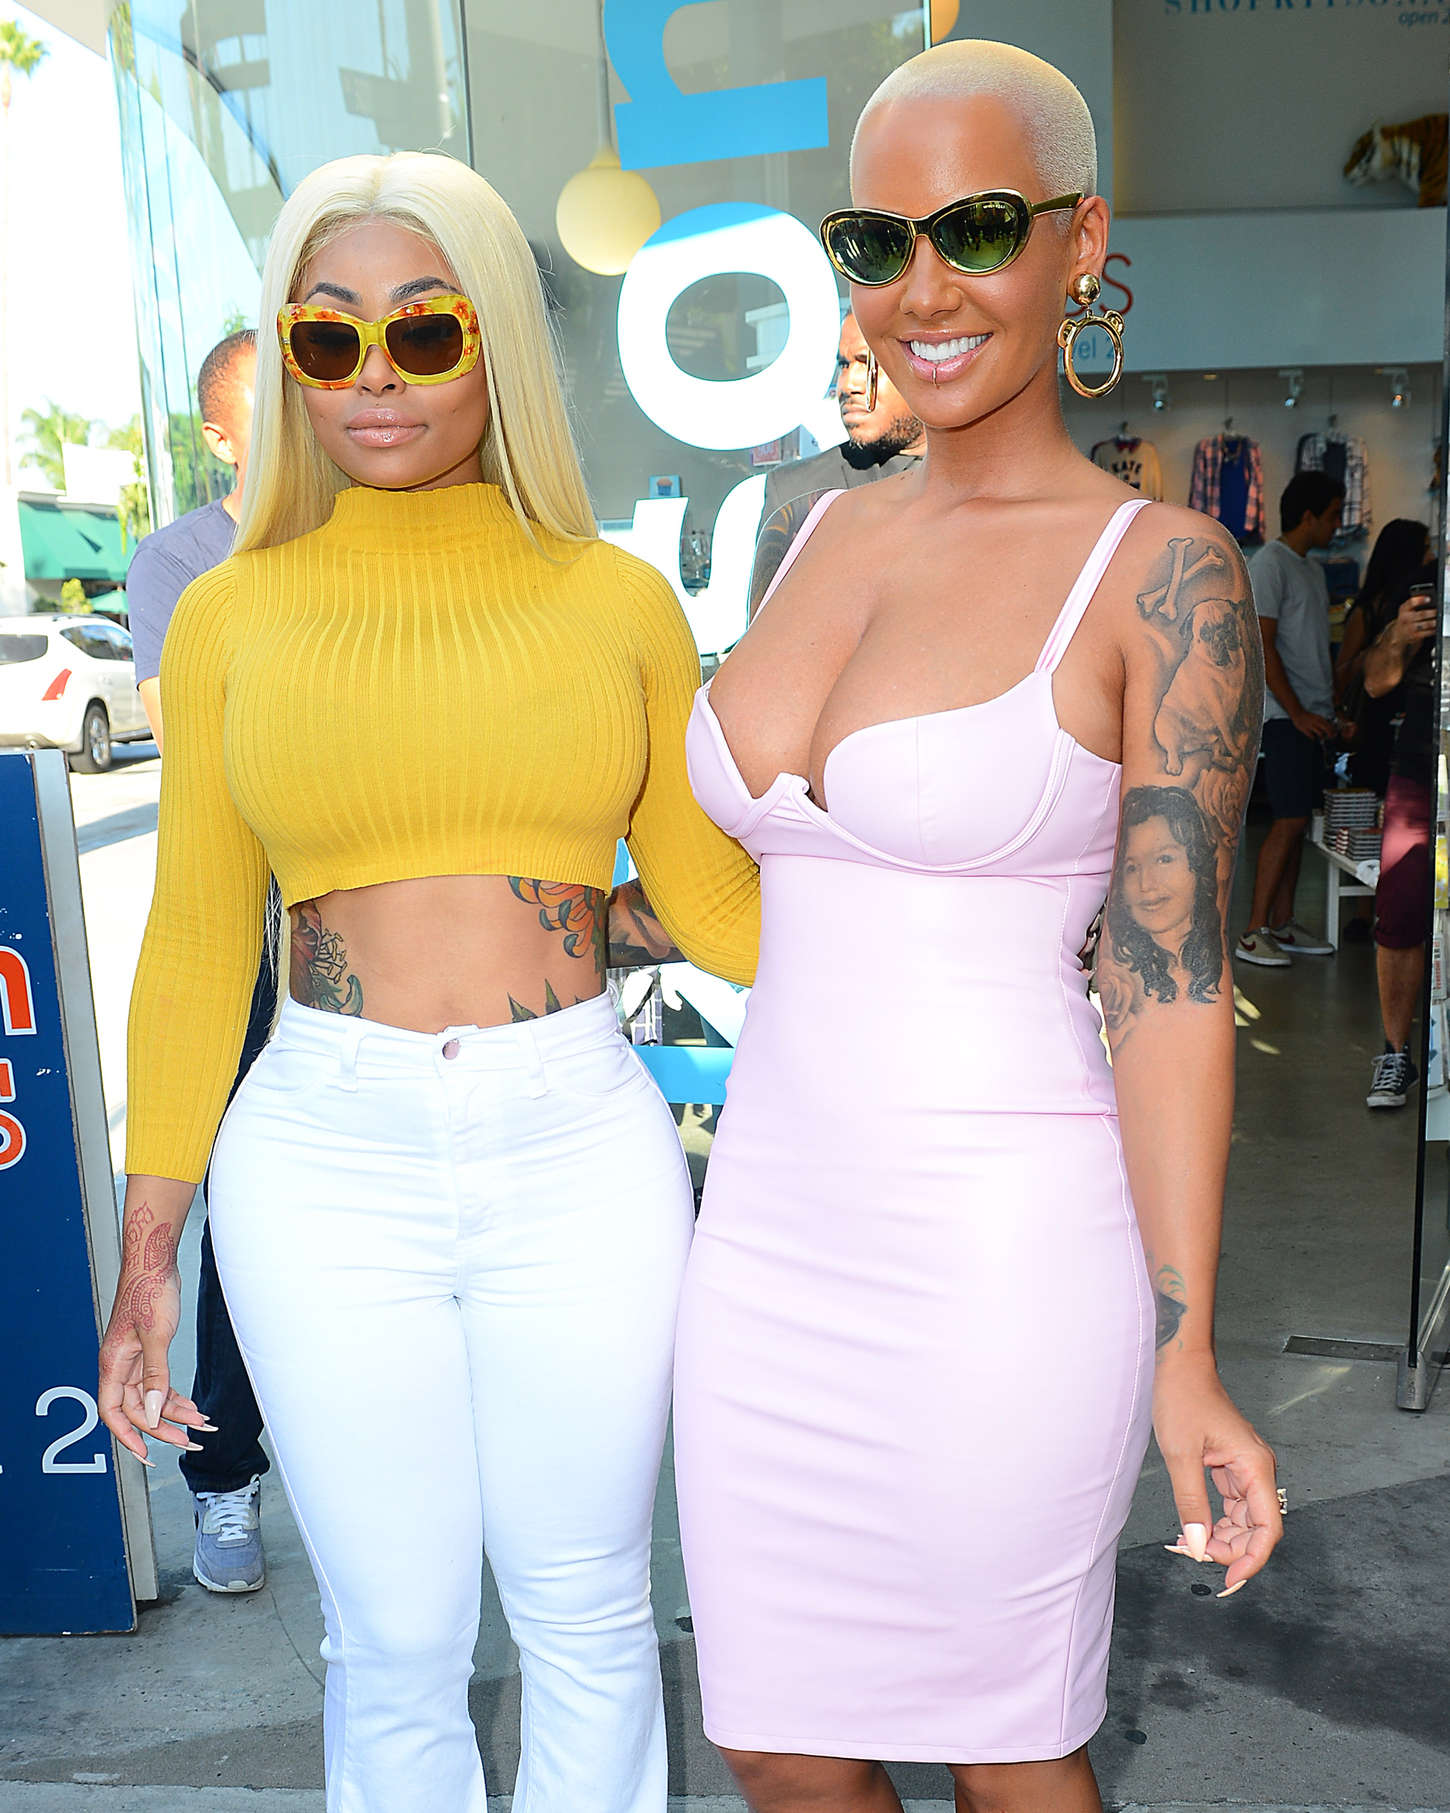 Agree blac chyna and amber rose for that